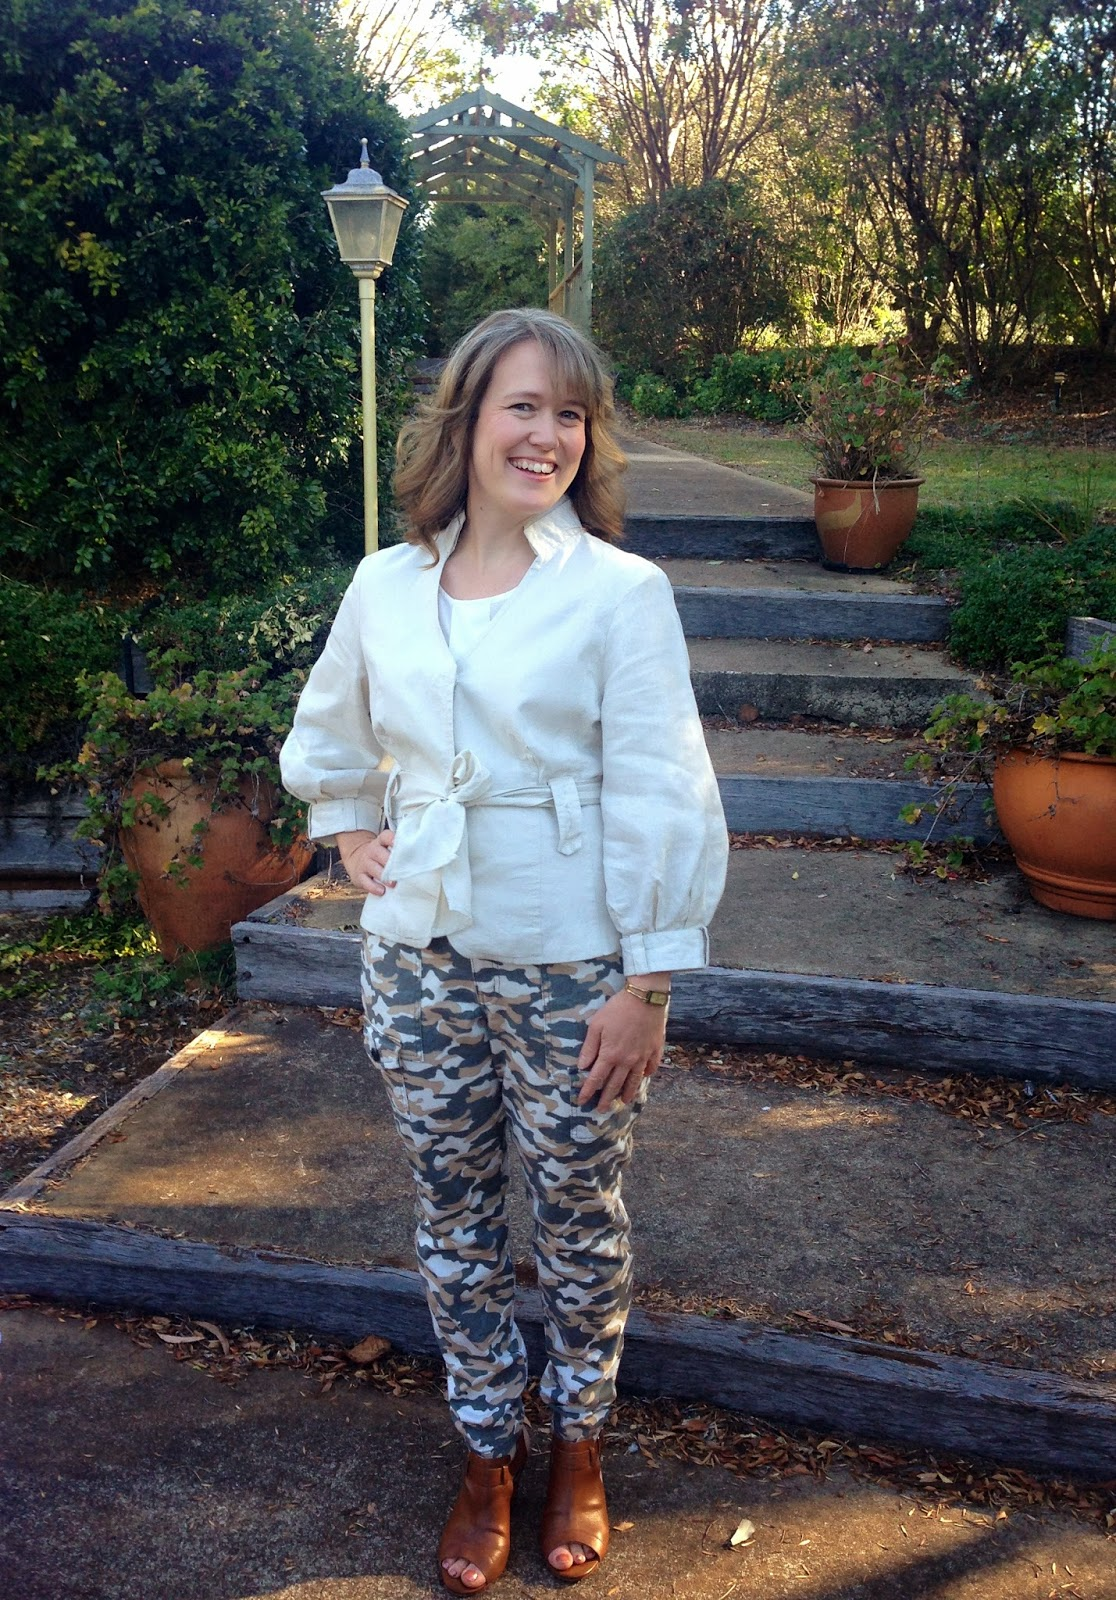 Styling skinny camo jeans with a jacket